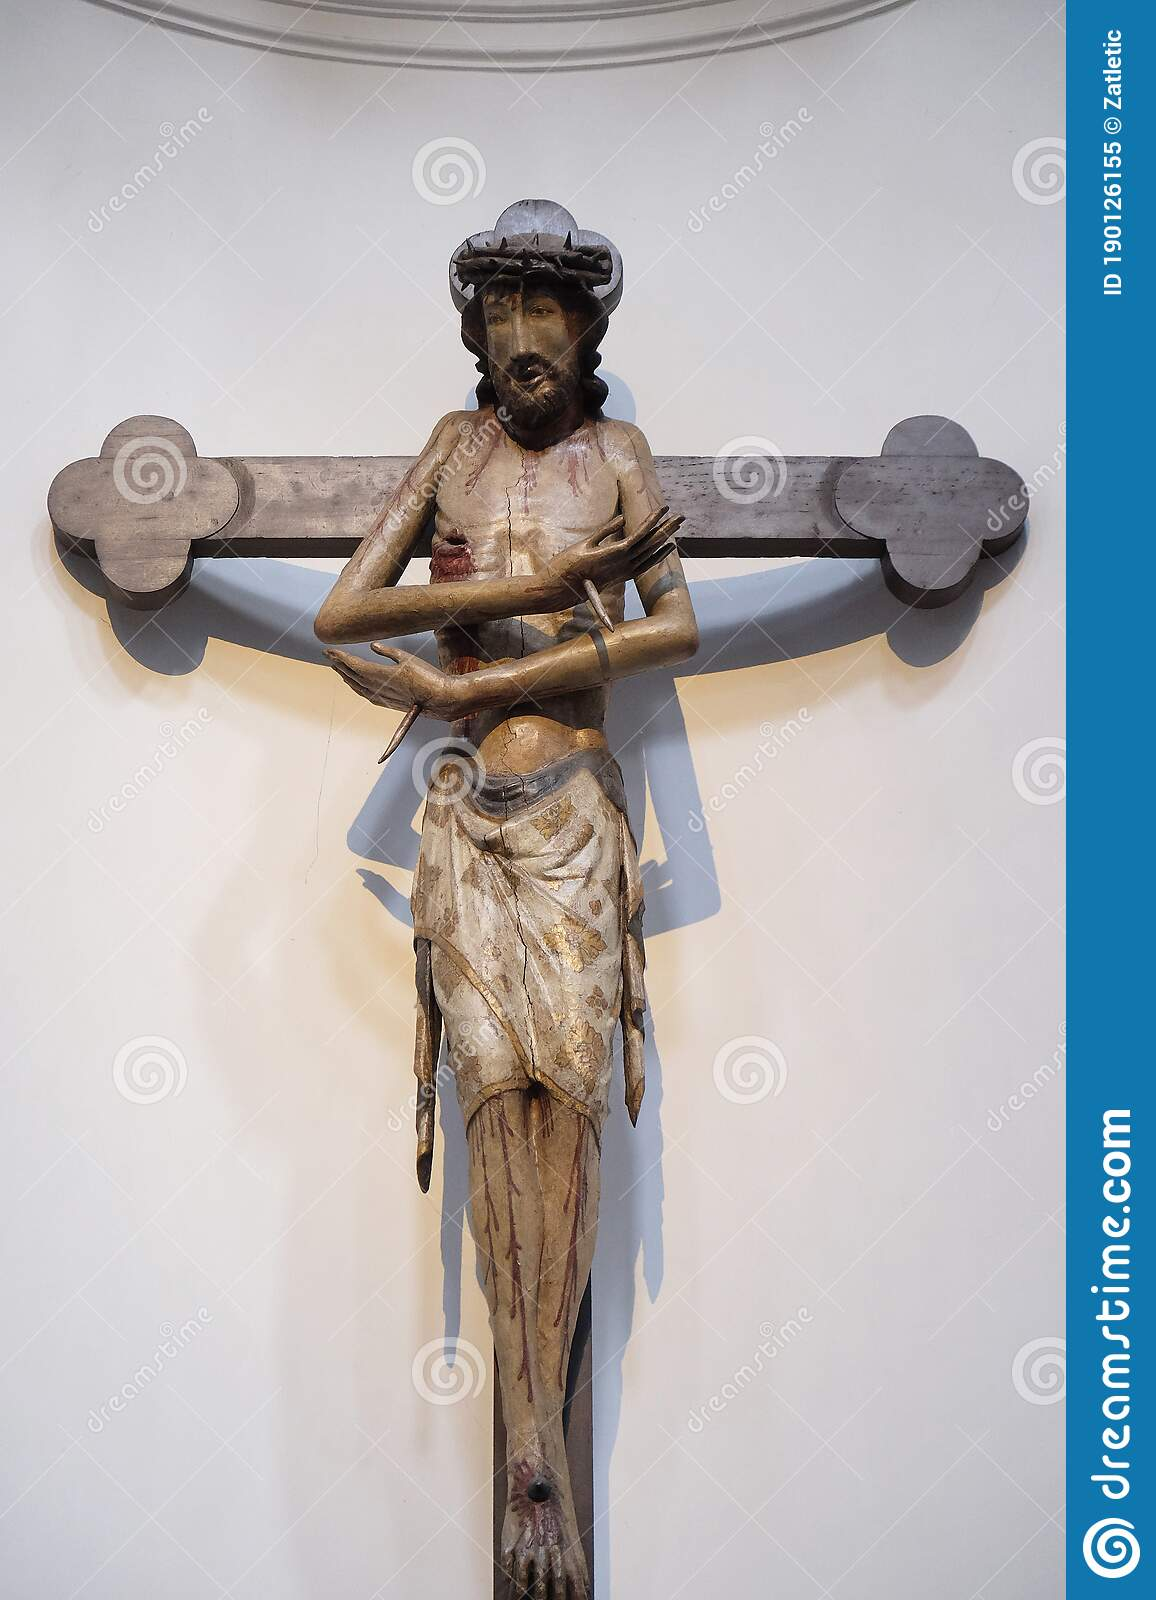 193 Jesus Embrace Photos Free Royalty Free Stock Photos From Dreamstime